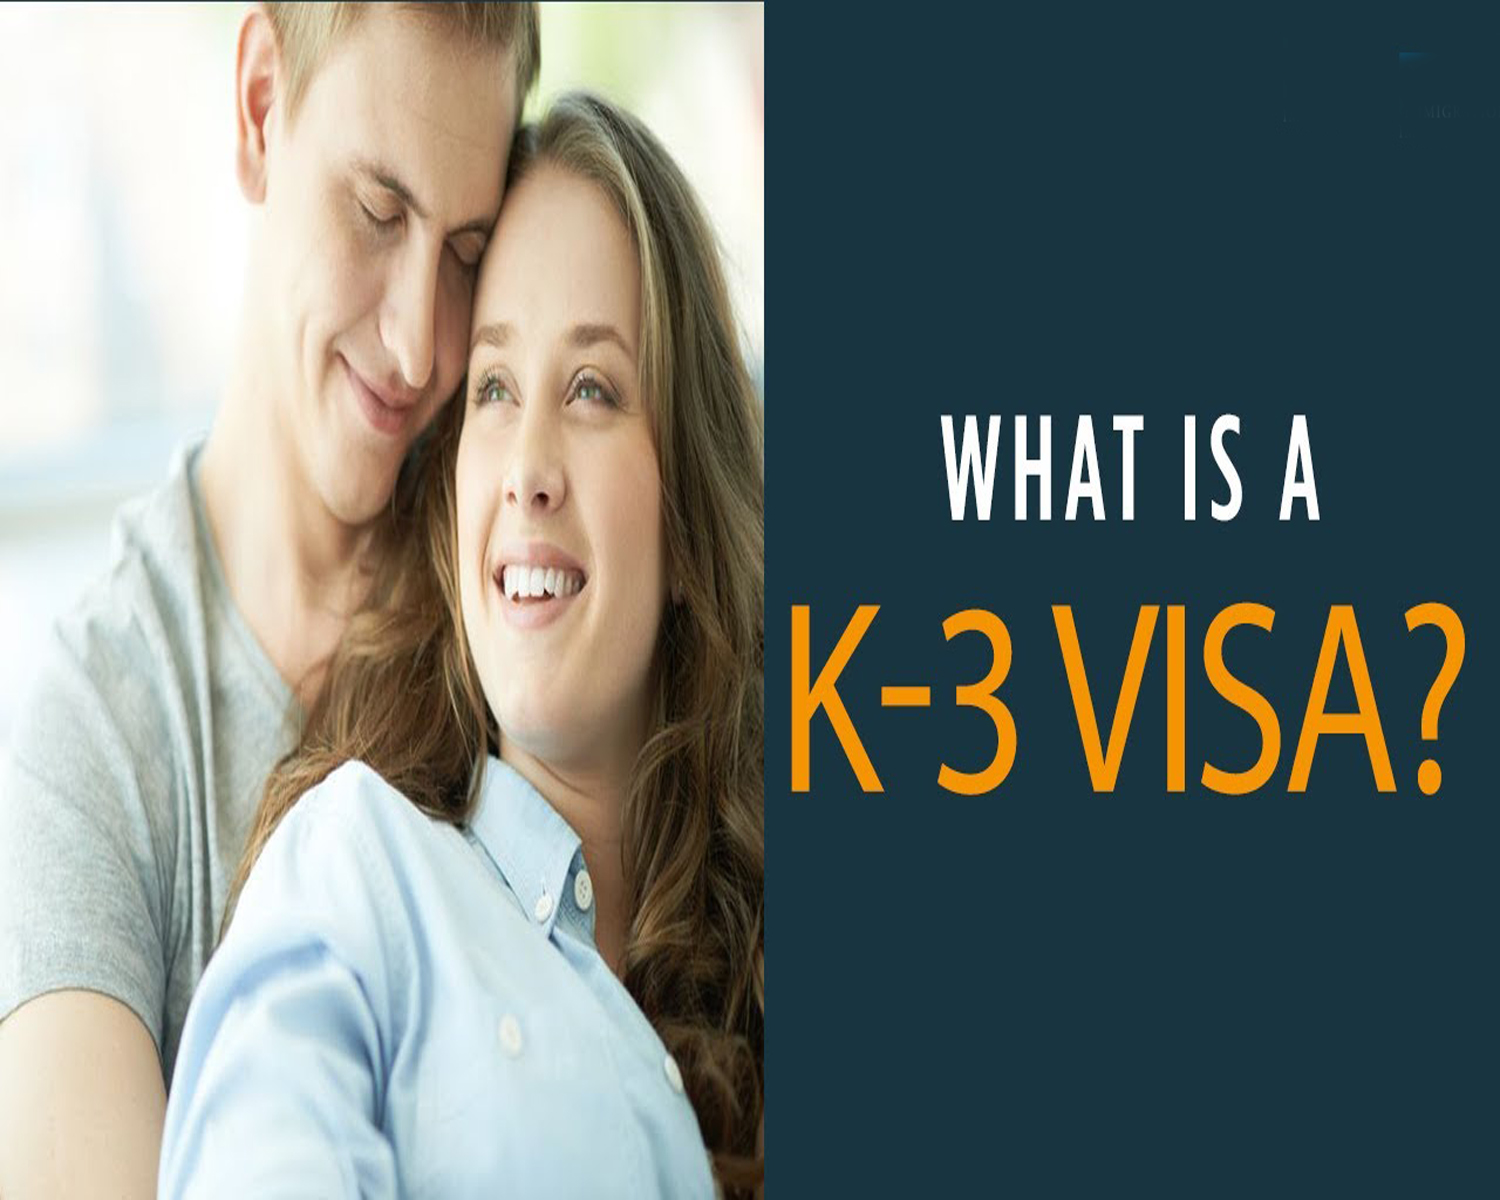 Process of Applying for a K-3 Visa